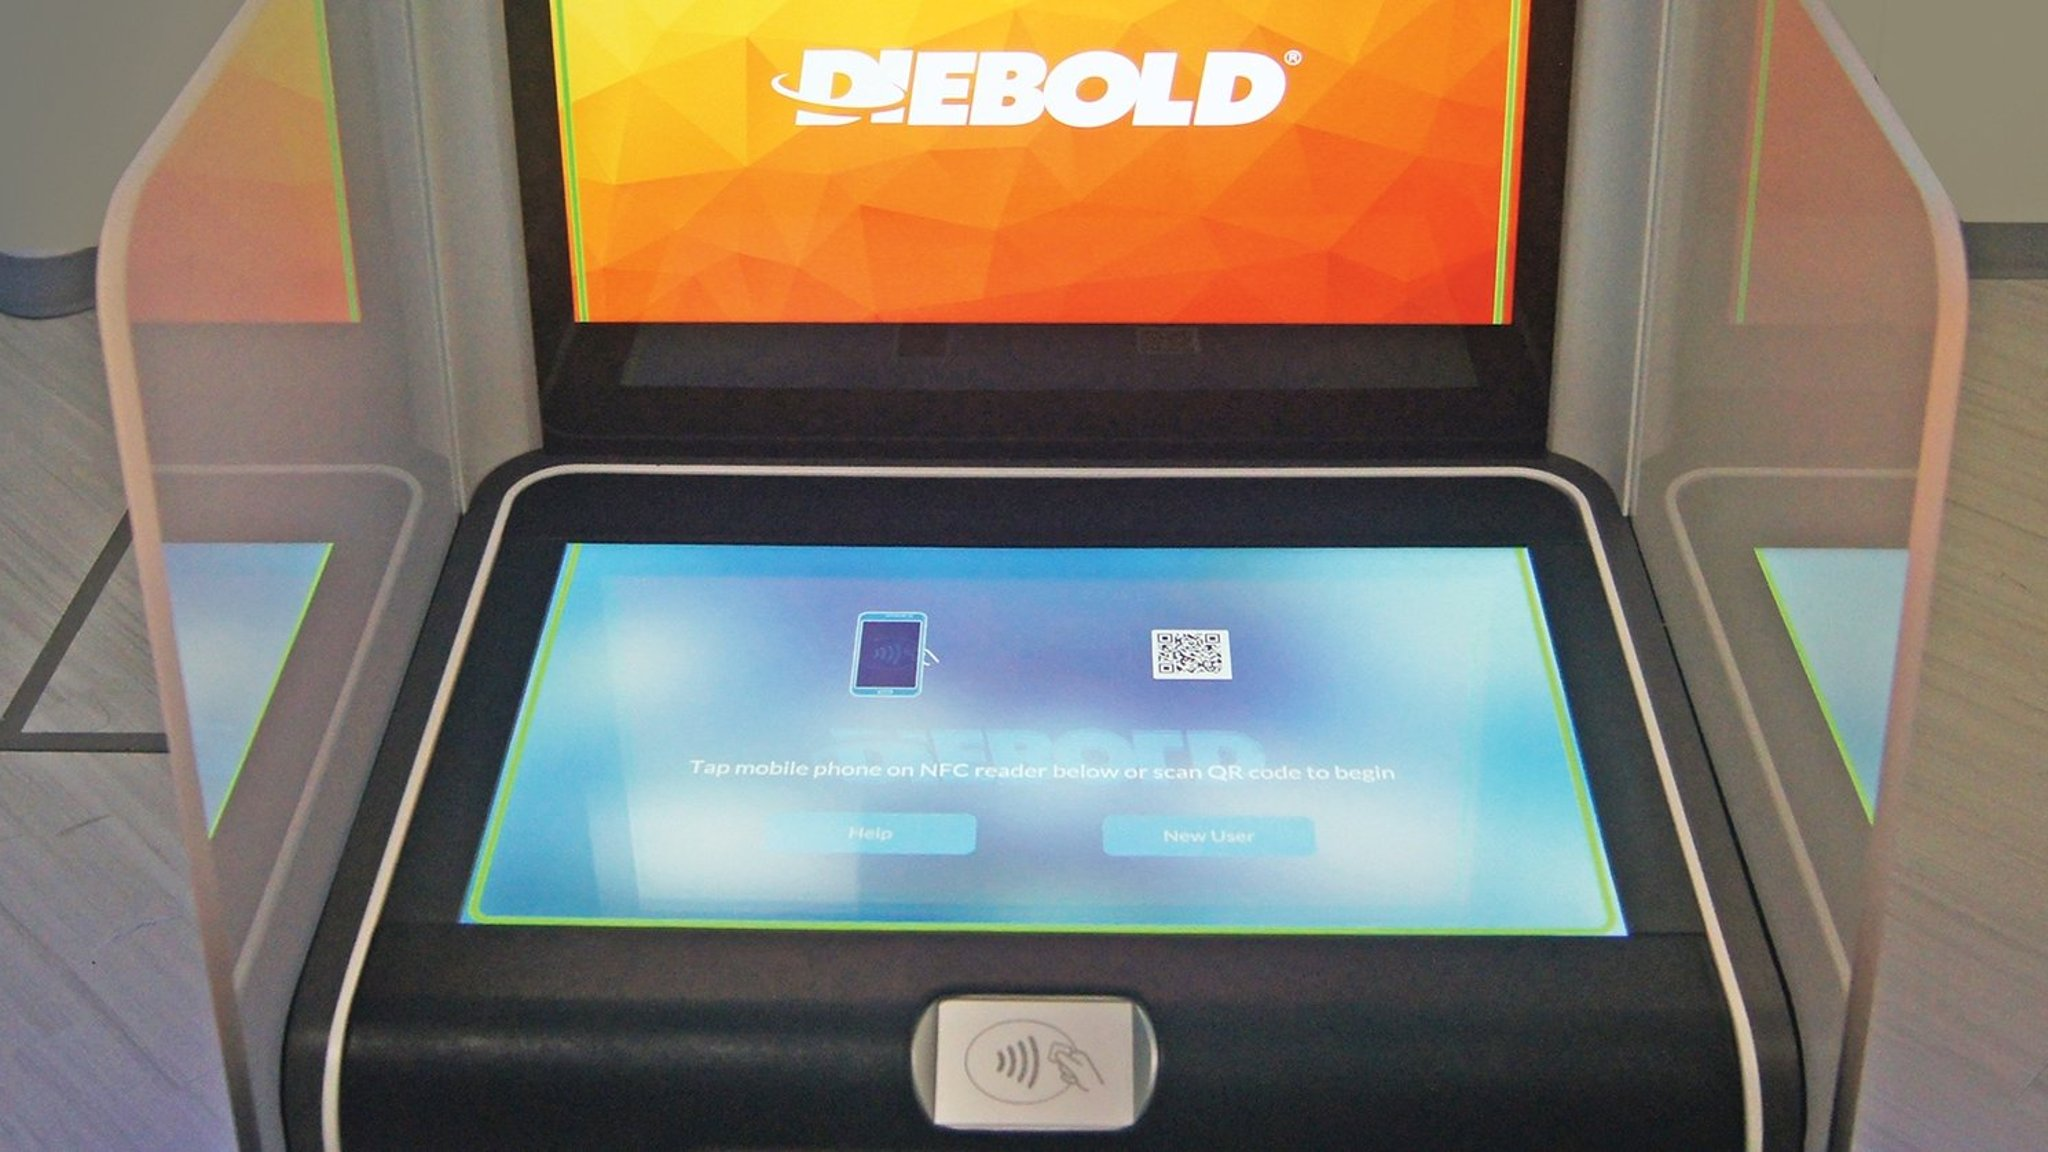 Diebold Nixdorf bets on future of 'smart ATMs' | Financial Times